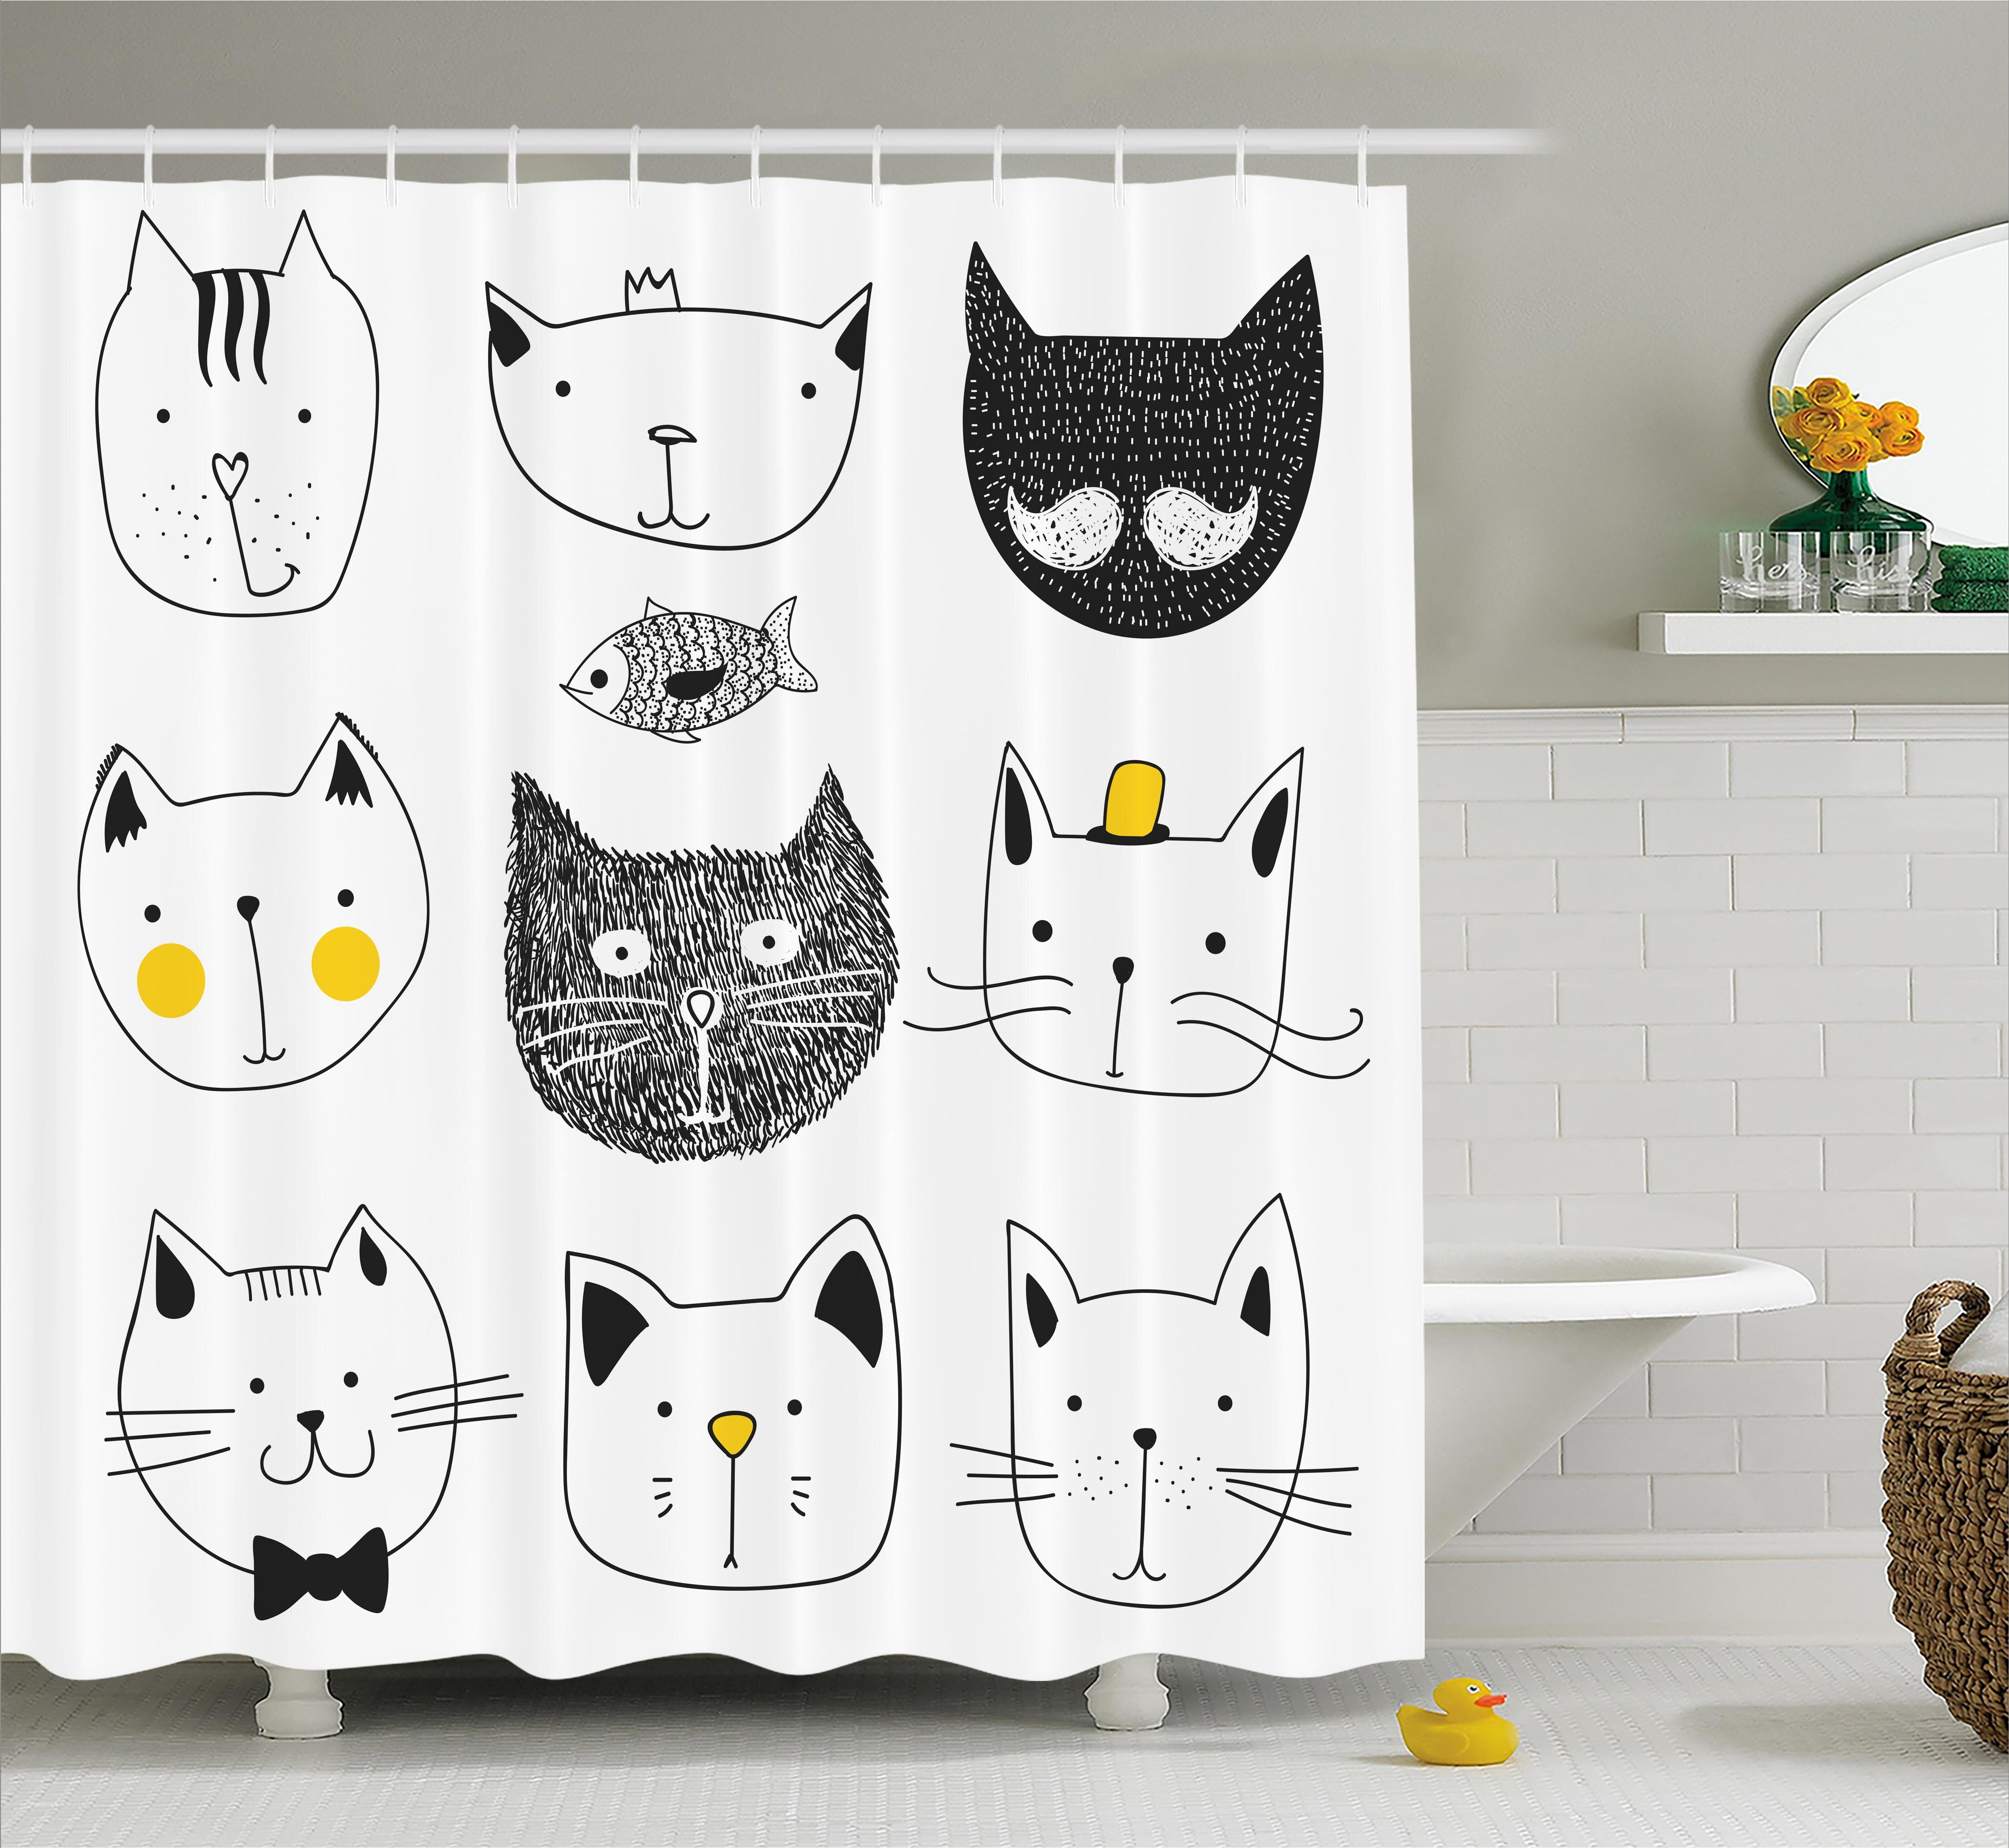 Everly Stylish Cats With Fish Shower Curtain Hooks